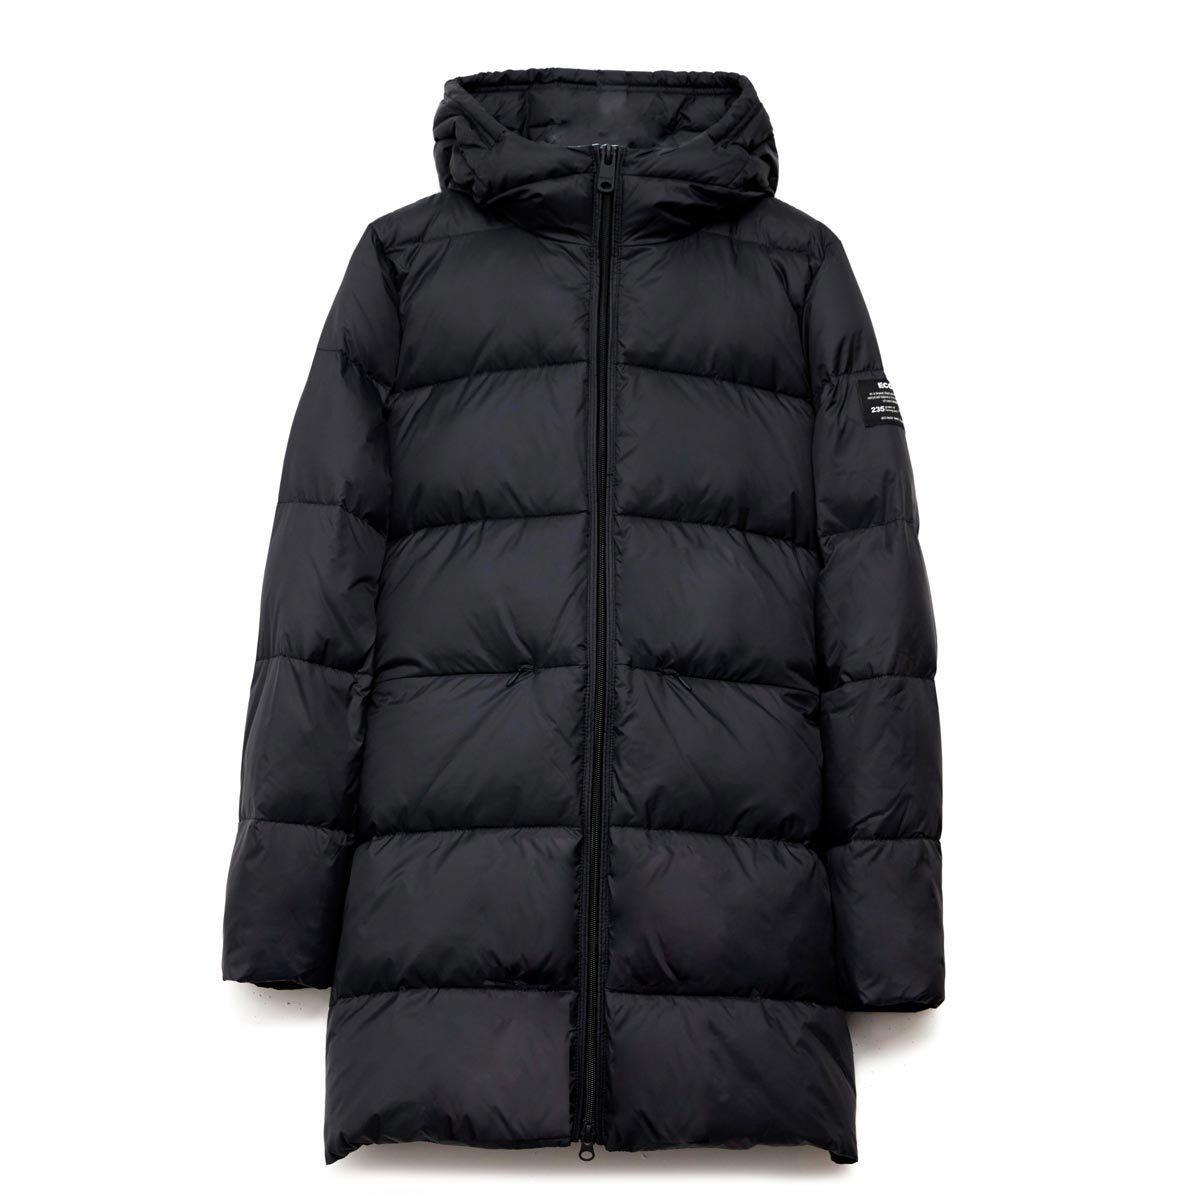 marangu coat black ecoalf